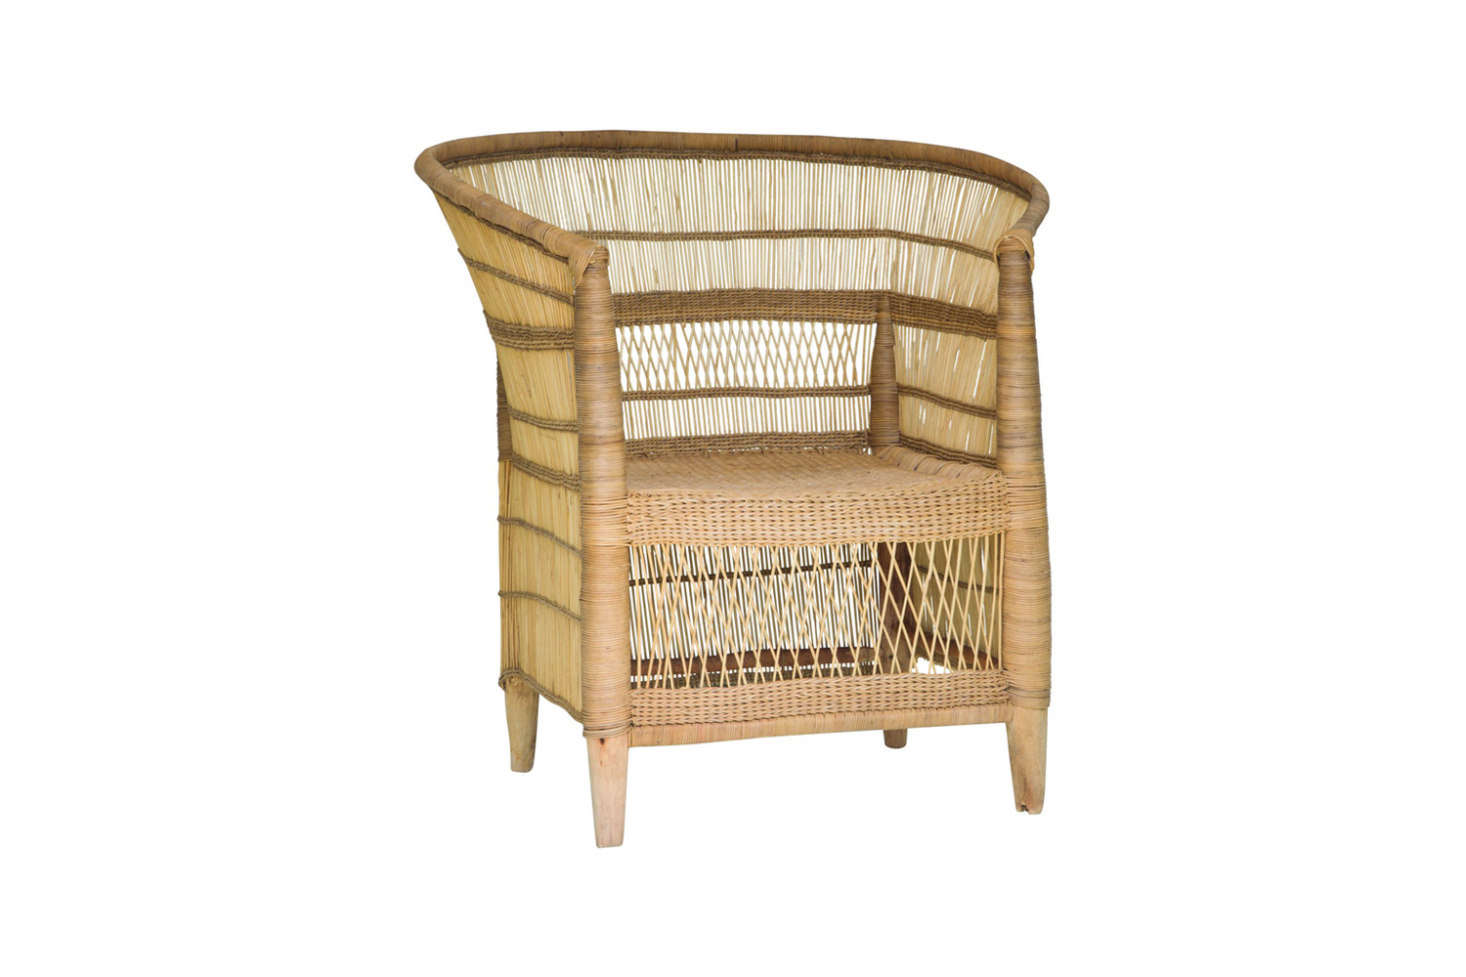 A classic French-AfricanMalawi Wicker Chair can be ordered through World Market for $349.99. It&#8